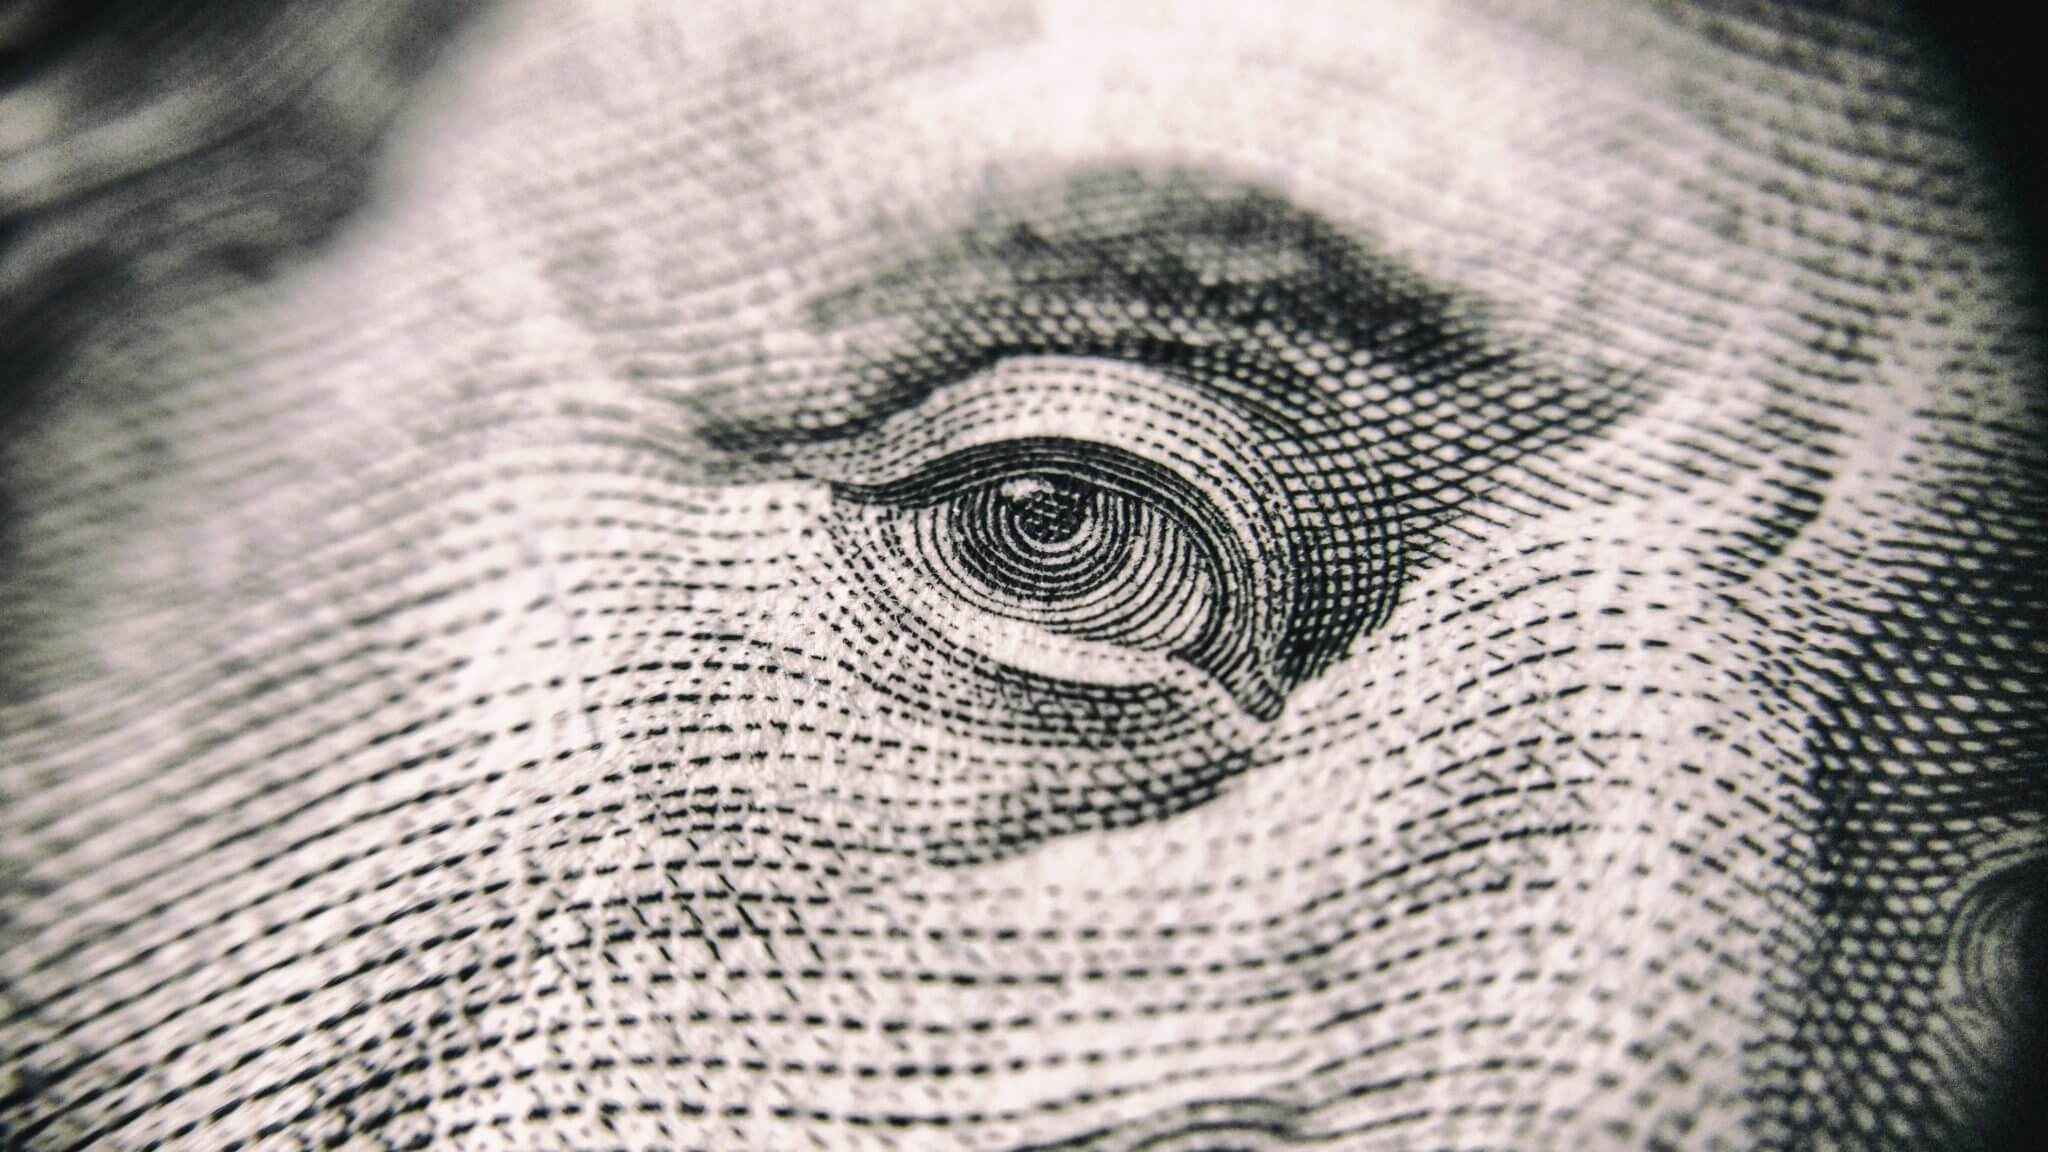 close up of bejamin franklin's eye on $100 bill